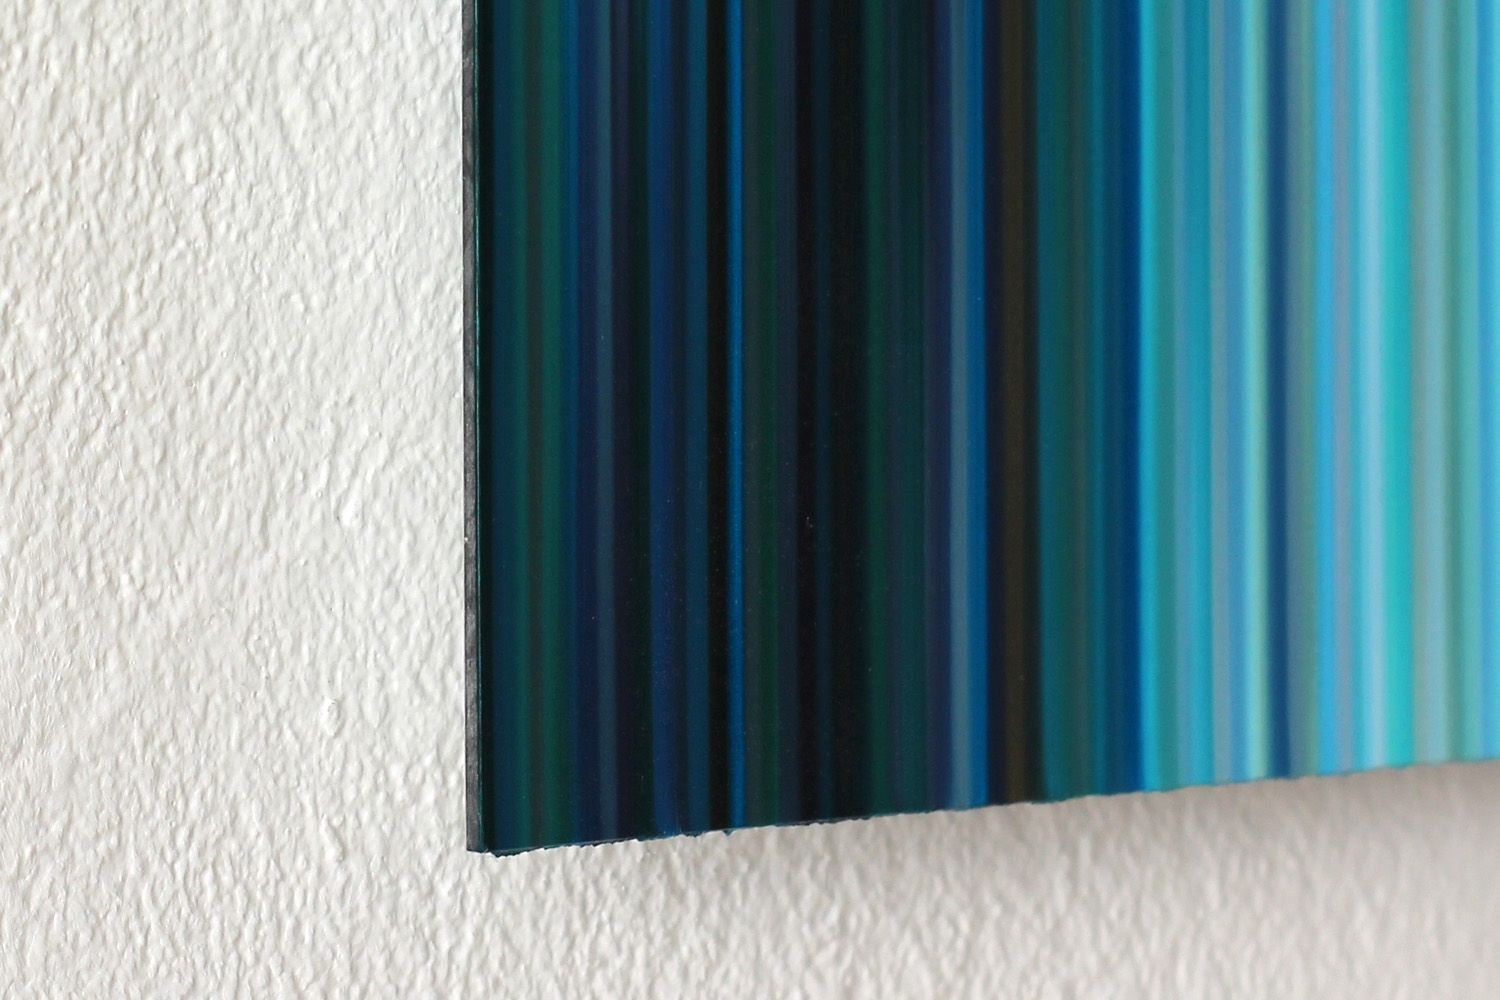 Light'n'Lines No.9,Doris Marten,Contemporary painting, detail 2